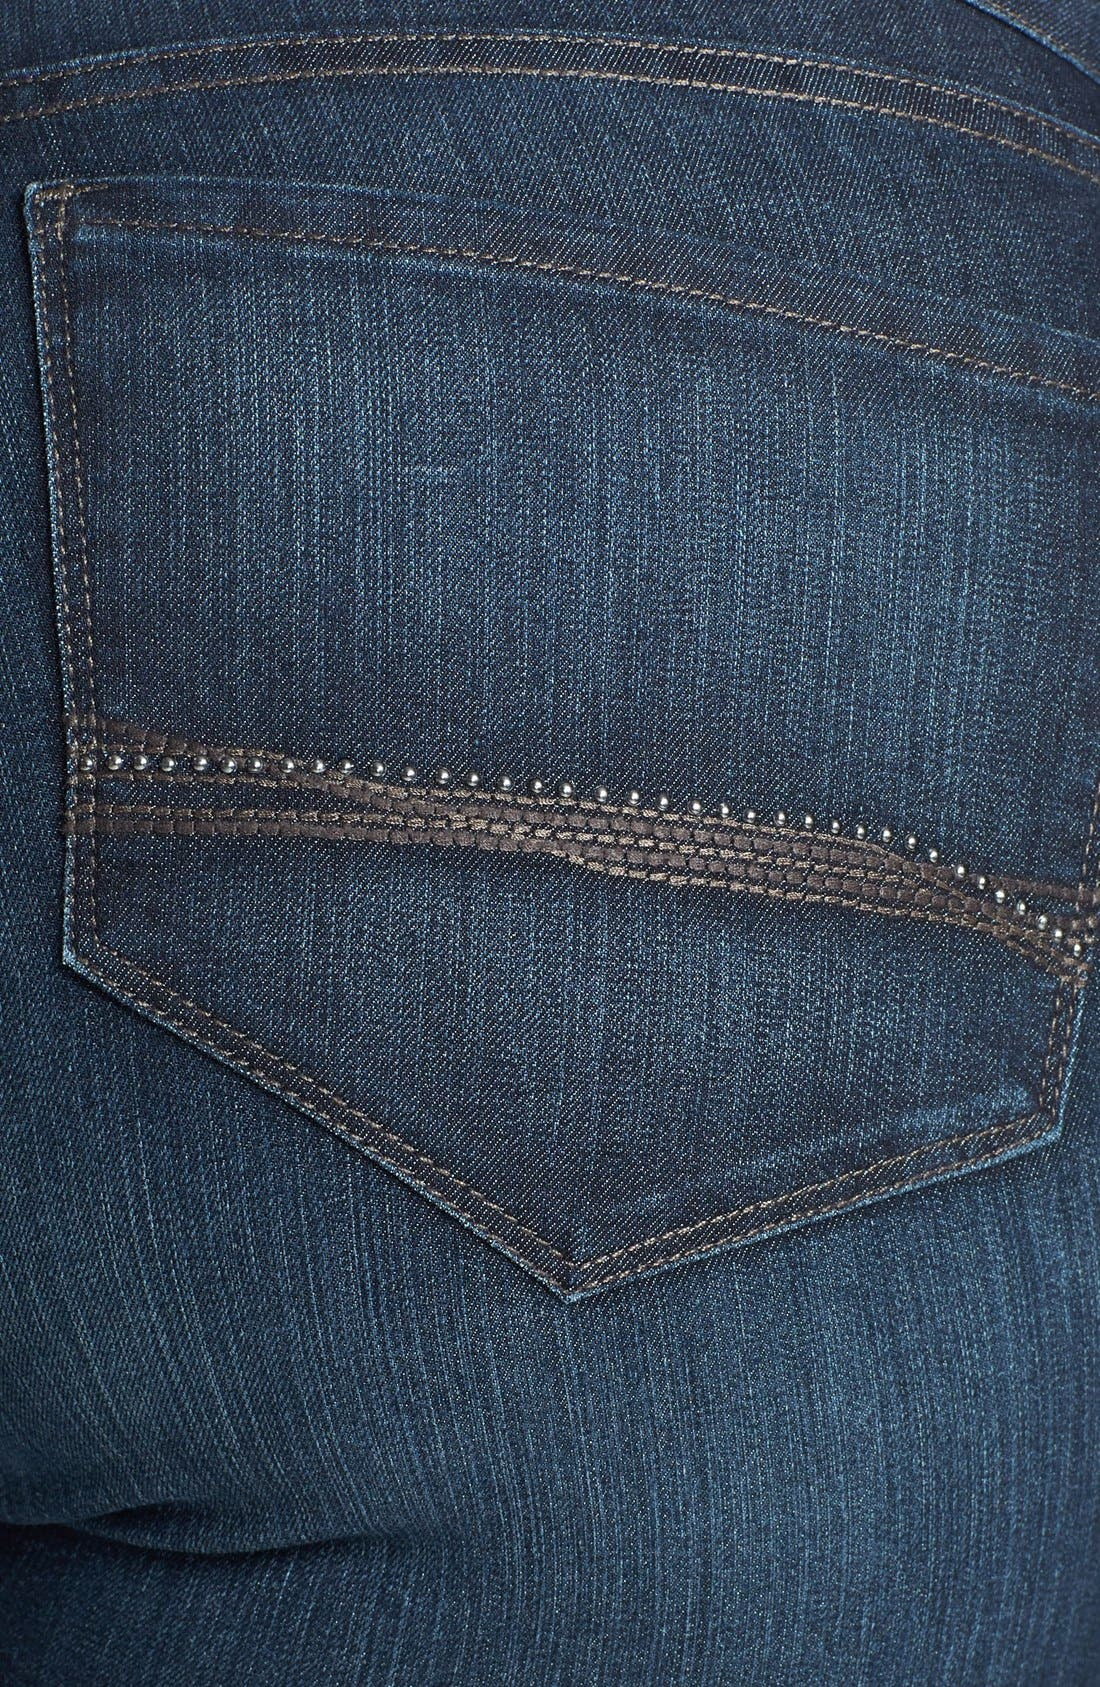 Alternate Image 3  - NYDJ 'Barbara' Embellished Pocket Stretch Bootcut Jeans (Burbank) (Plus Size)